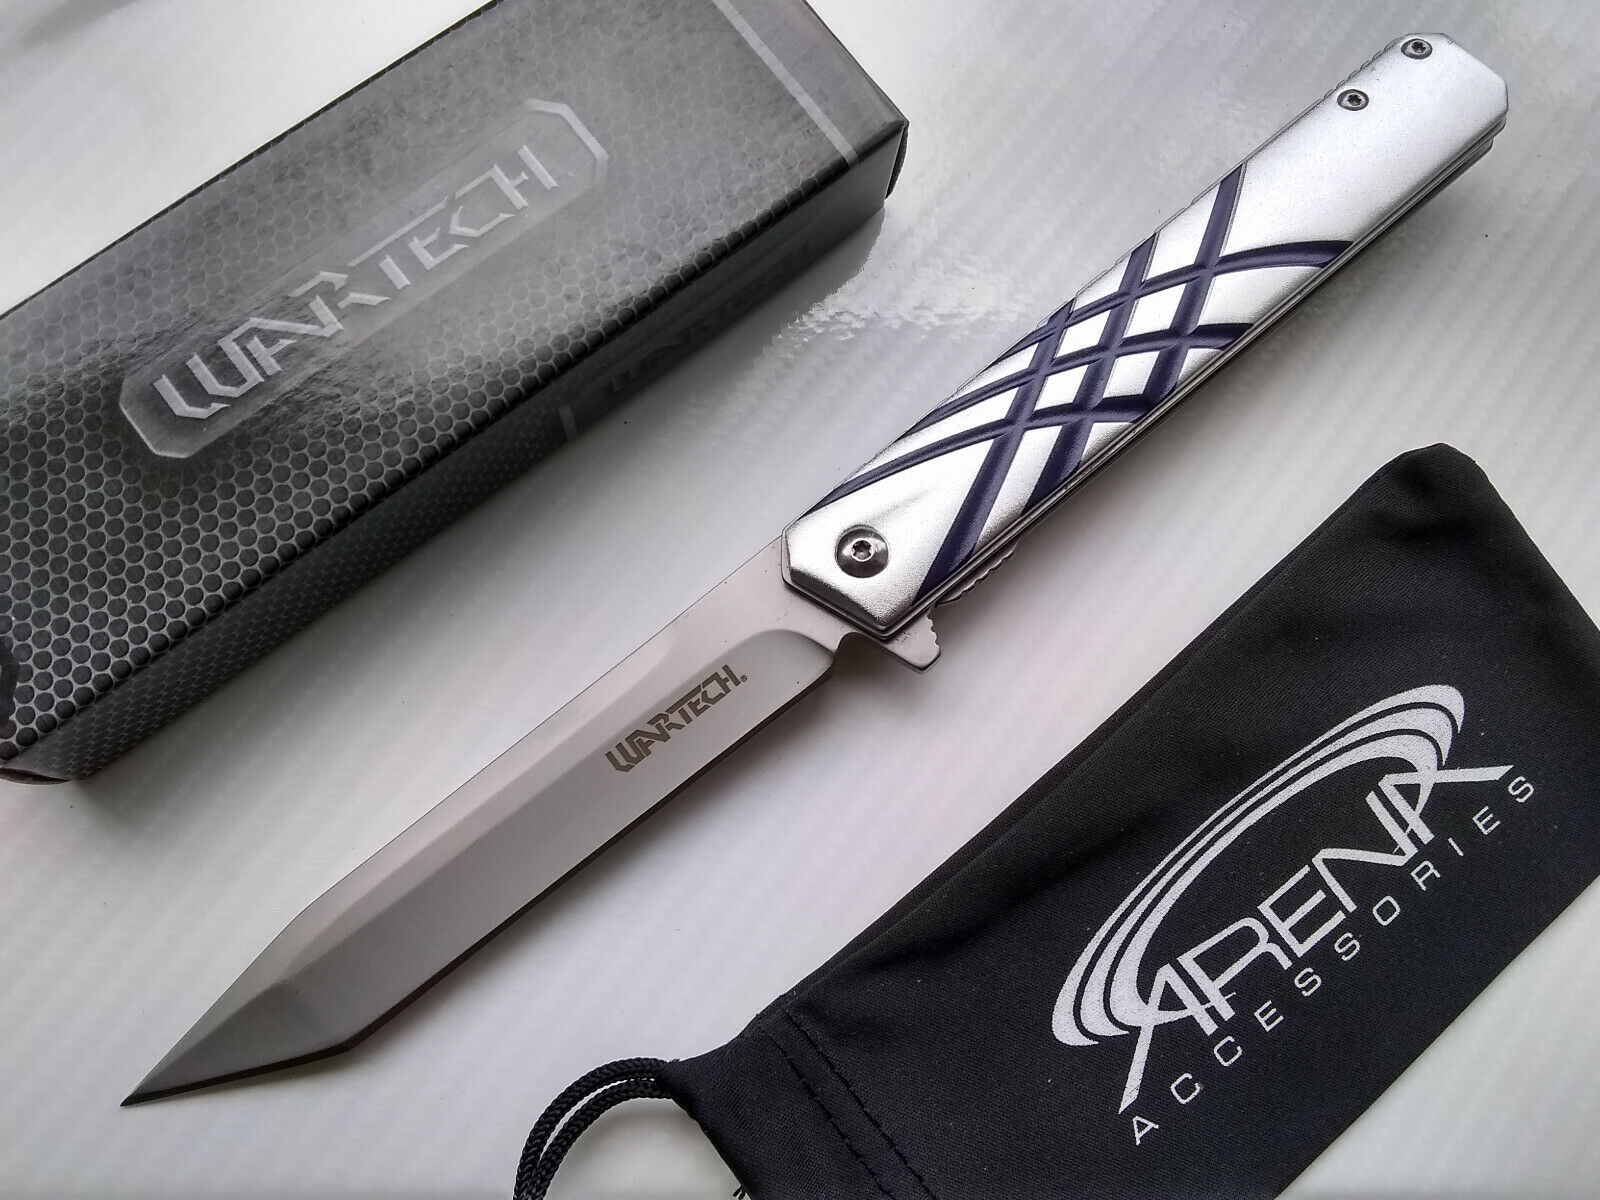 Wartech Gentlemans Slim Design Silver Tanto Pocket Knife Spring Assist EDC FrameLock Flipper